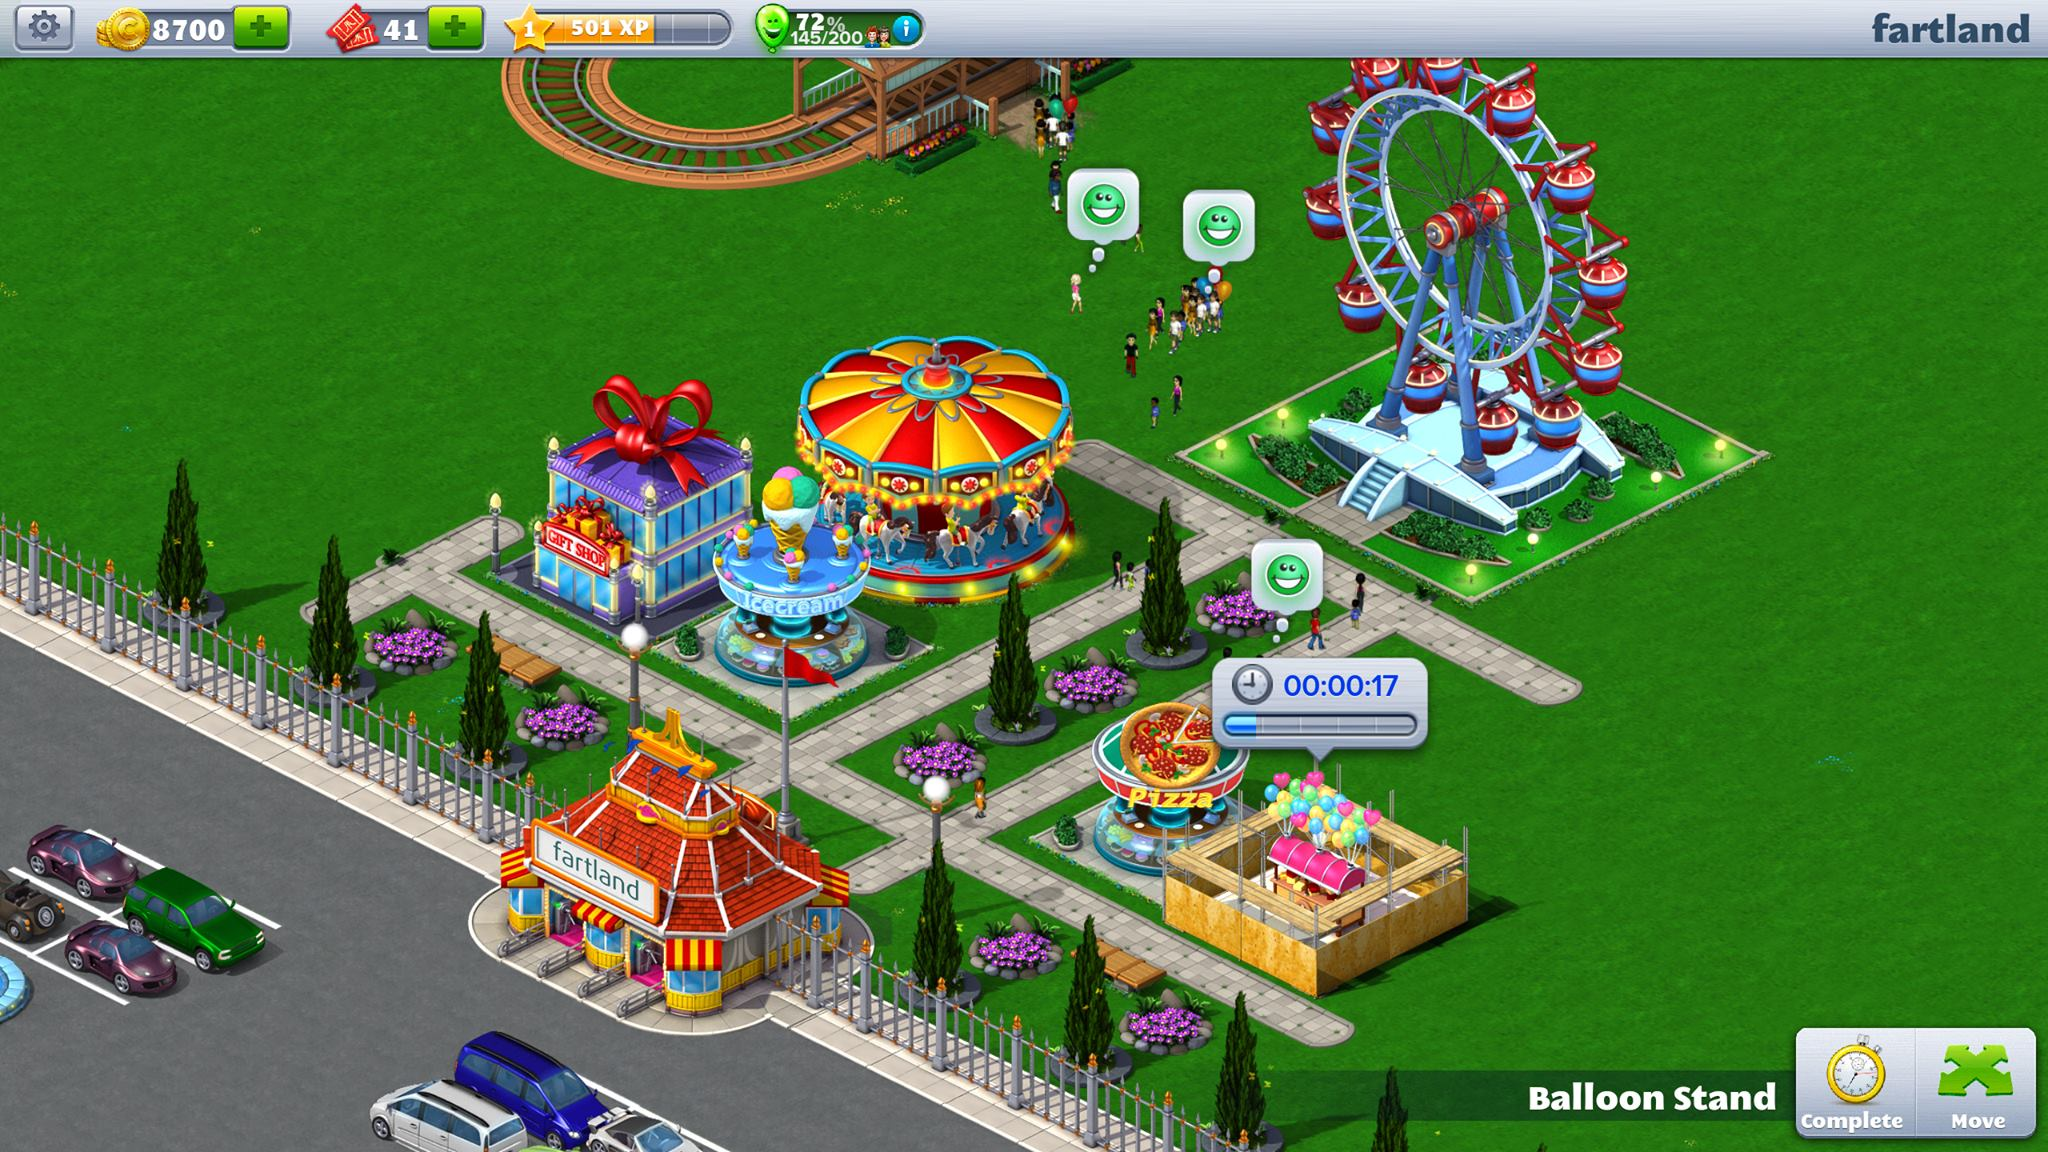 Build your dream park with RollerCoaster Tycoon 4 Mobile